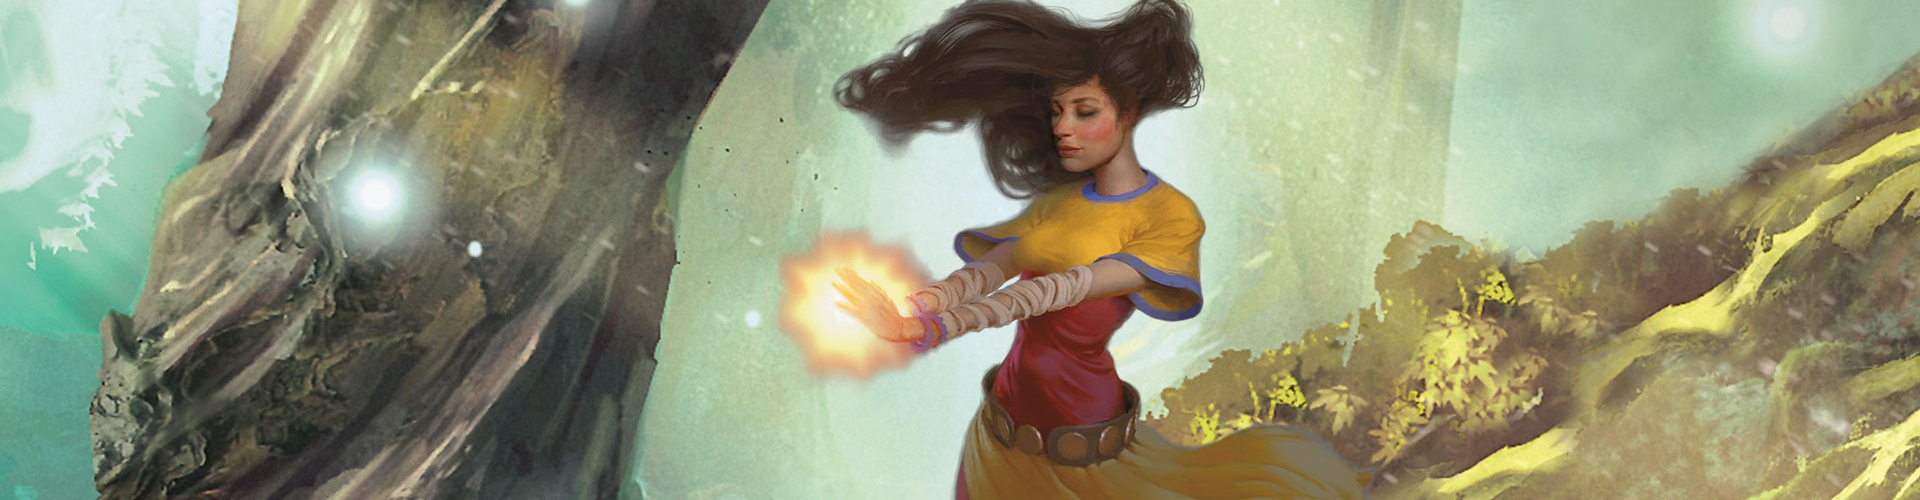 Unearthed Arcana: Monk Monastic Traditions Analysis – The Kind GM